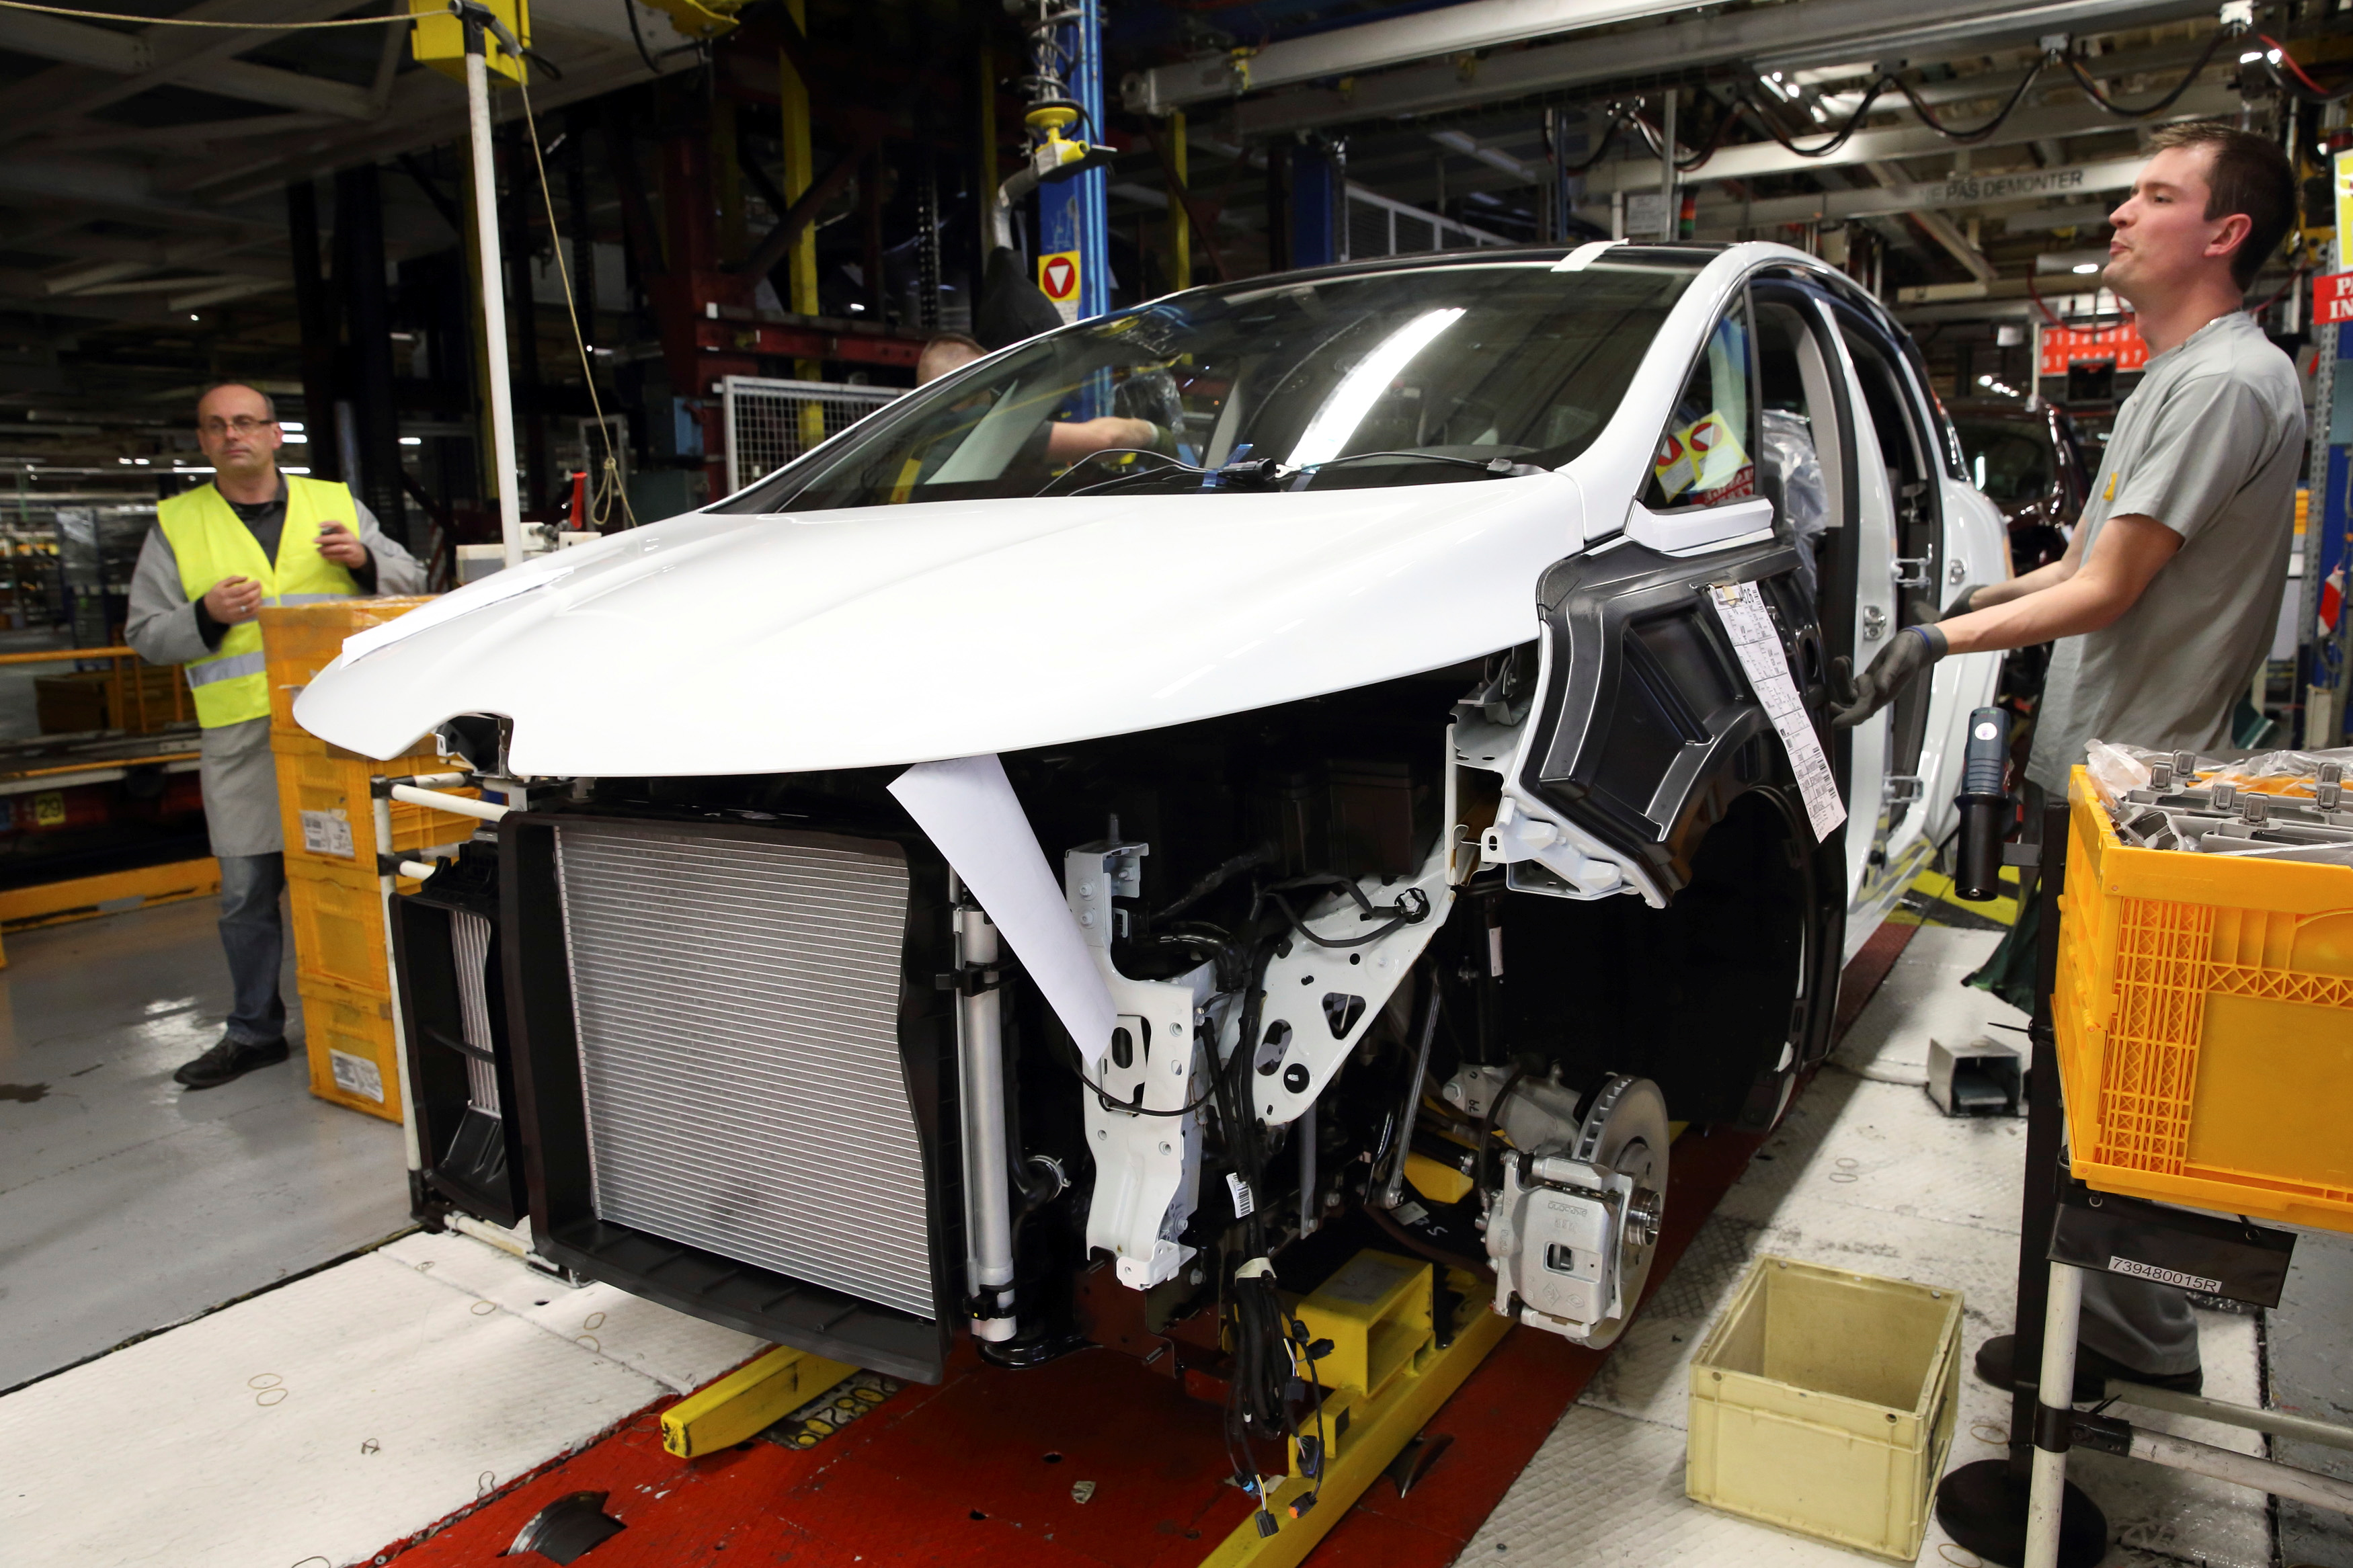 Employees work on the assembly line of the new Renault Espace car at the Renault automobile assembly plant in Douai, northern France, November 26, 2014.   REUTERS/Pascal Rossignol/File Photo